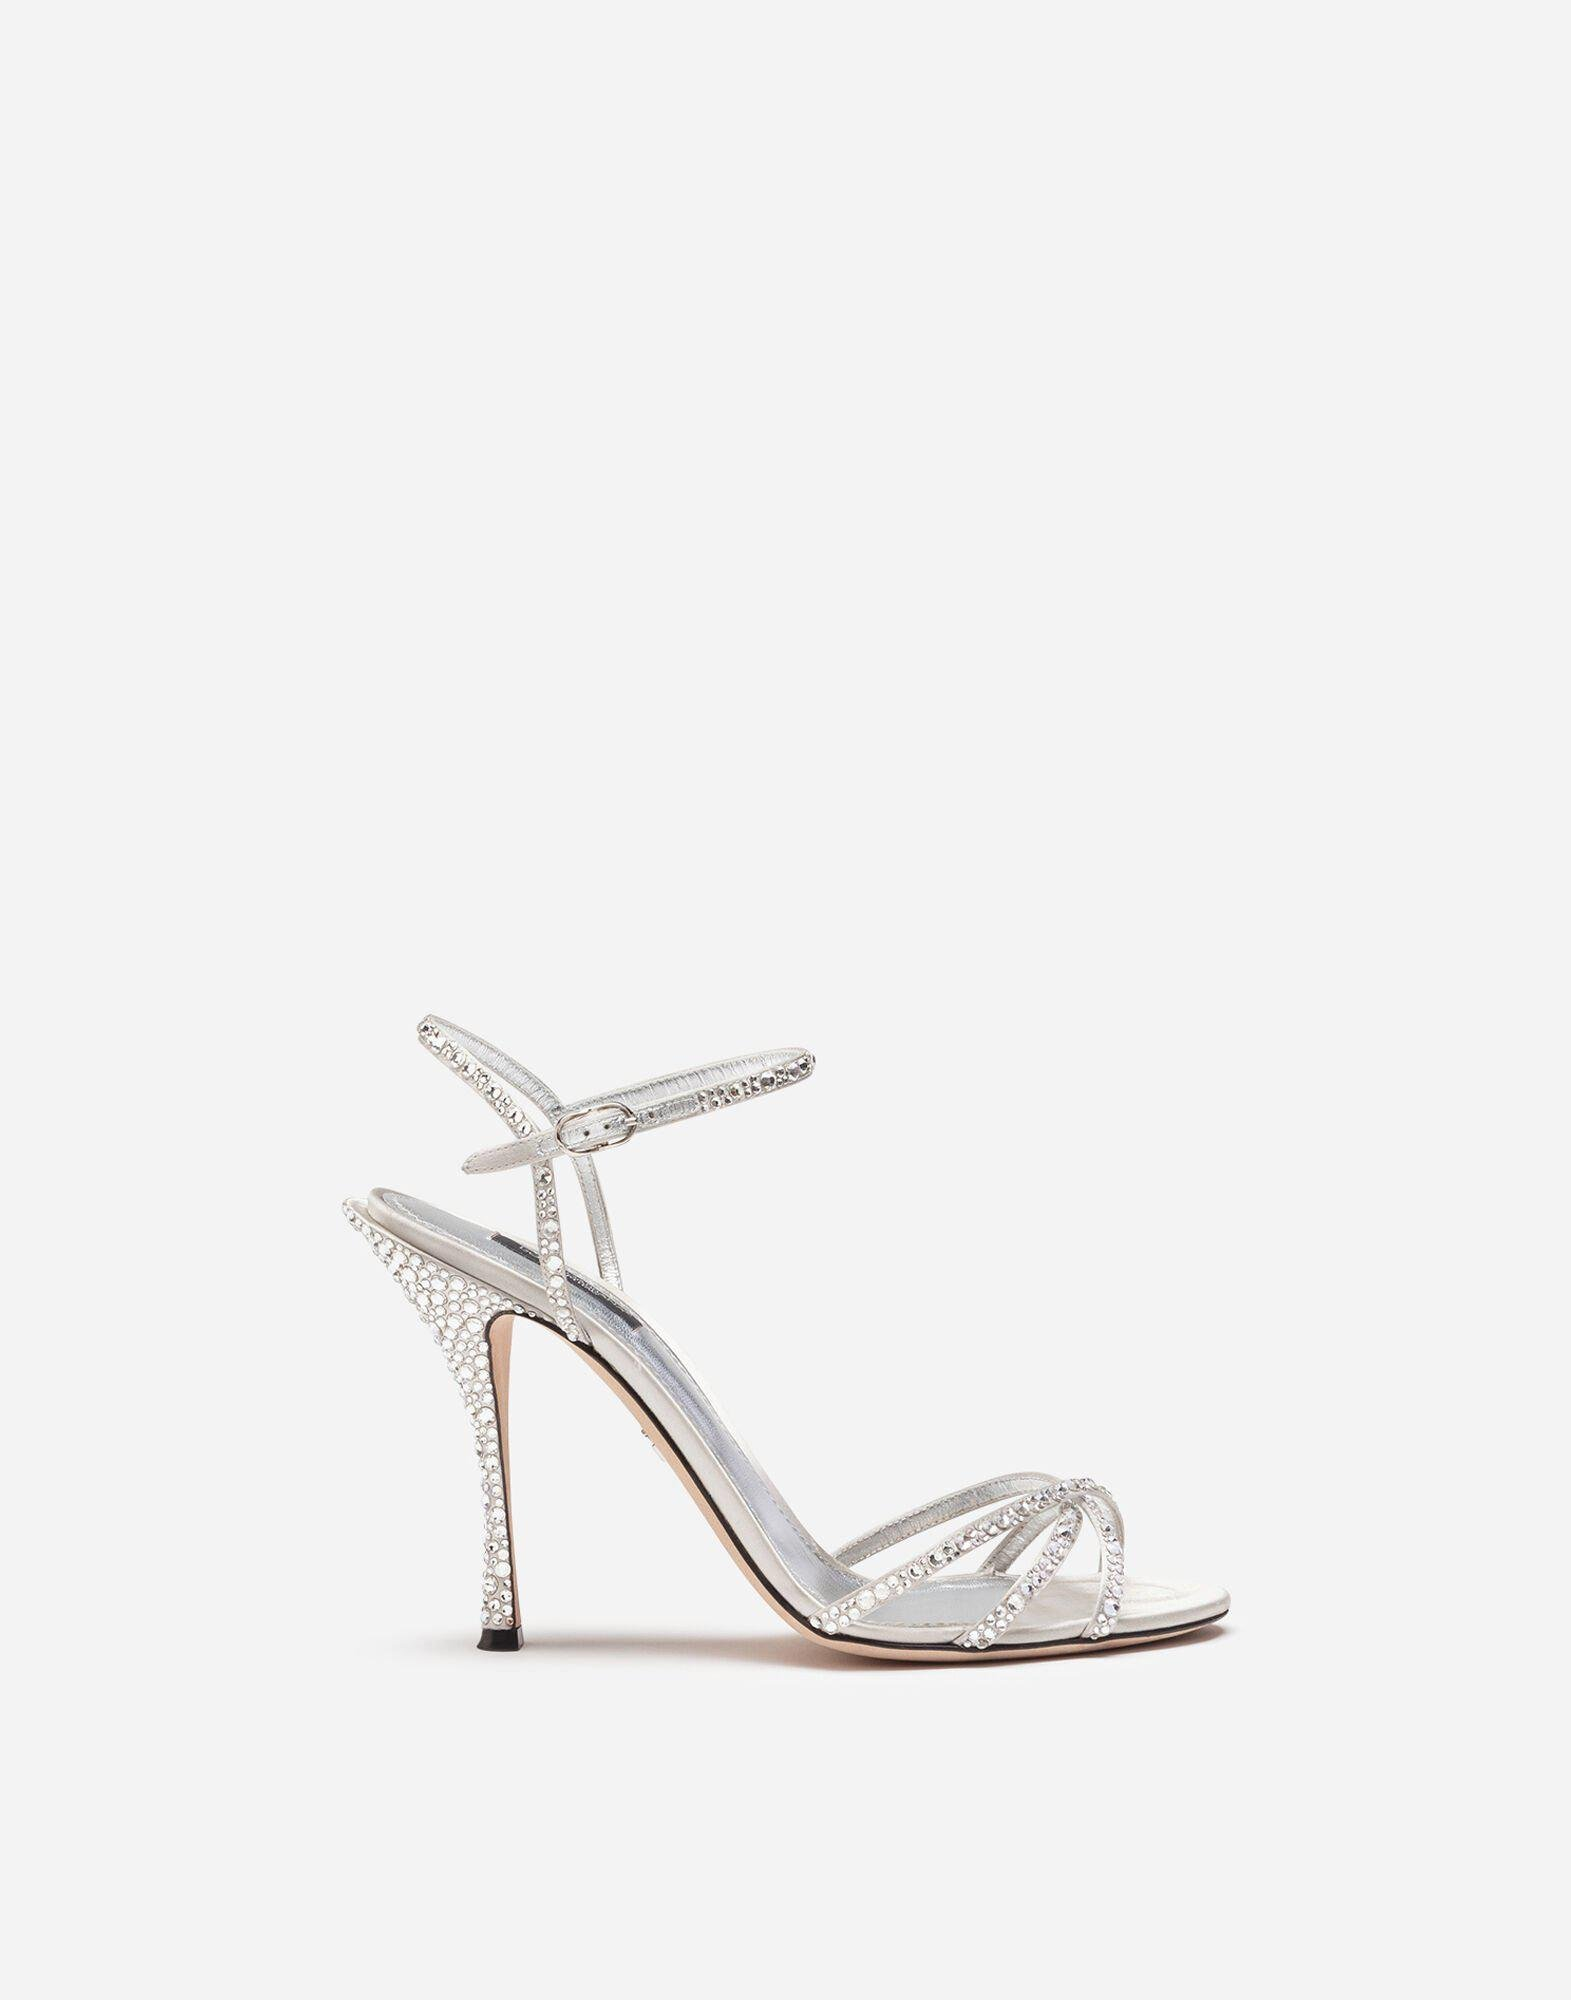 Satin sandals with fusible rhinestone detailing